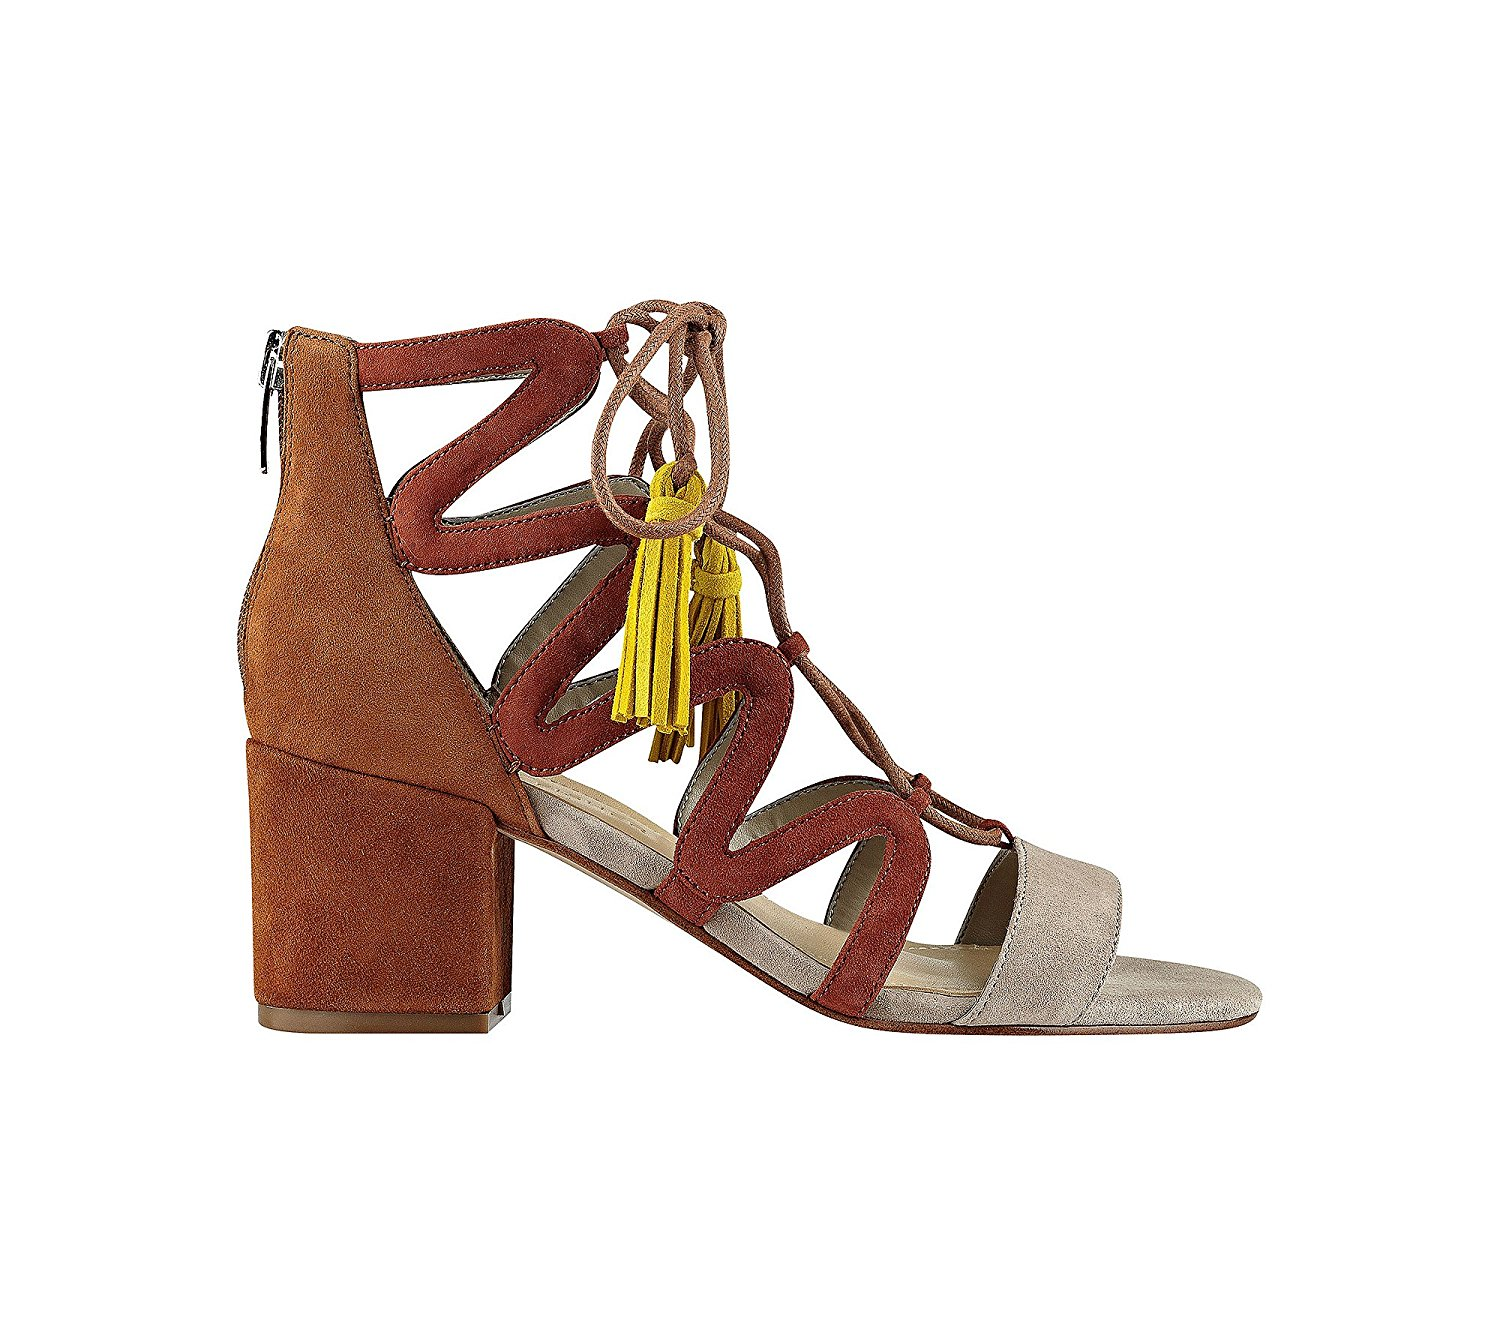 Marc Fisher Damenschuhe Rayz Almond Suede Almond Rayz Toe Casual Strappy Sandales     6e5af7